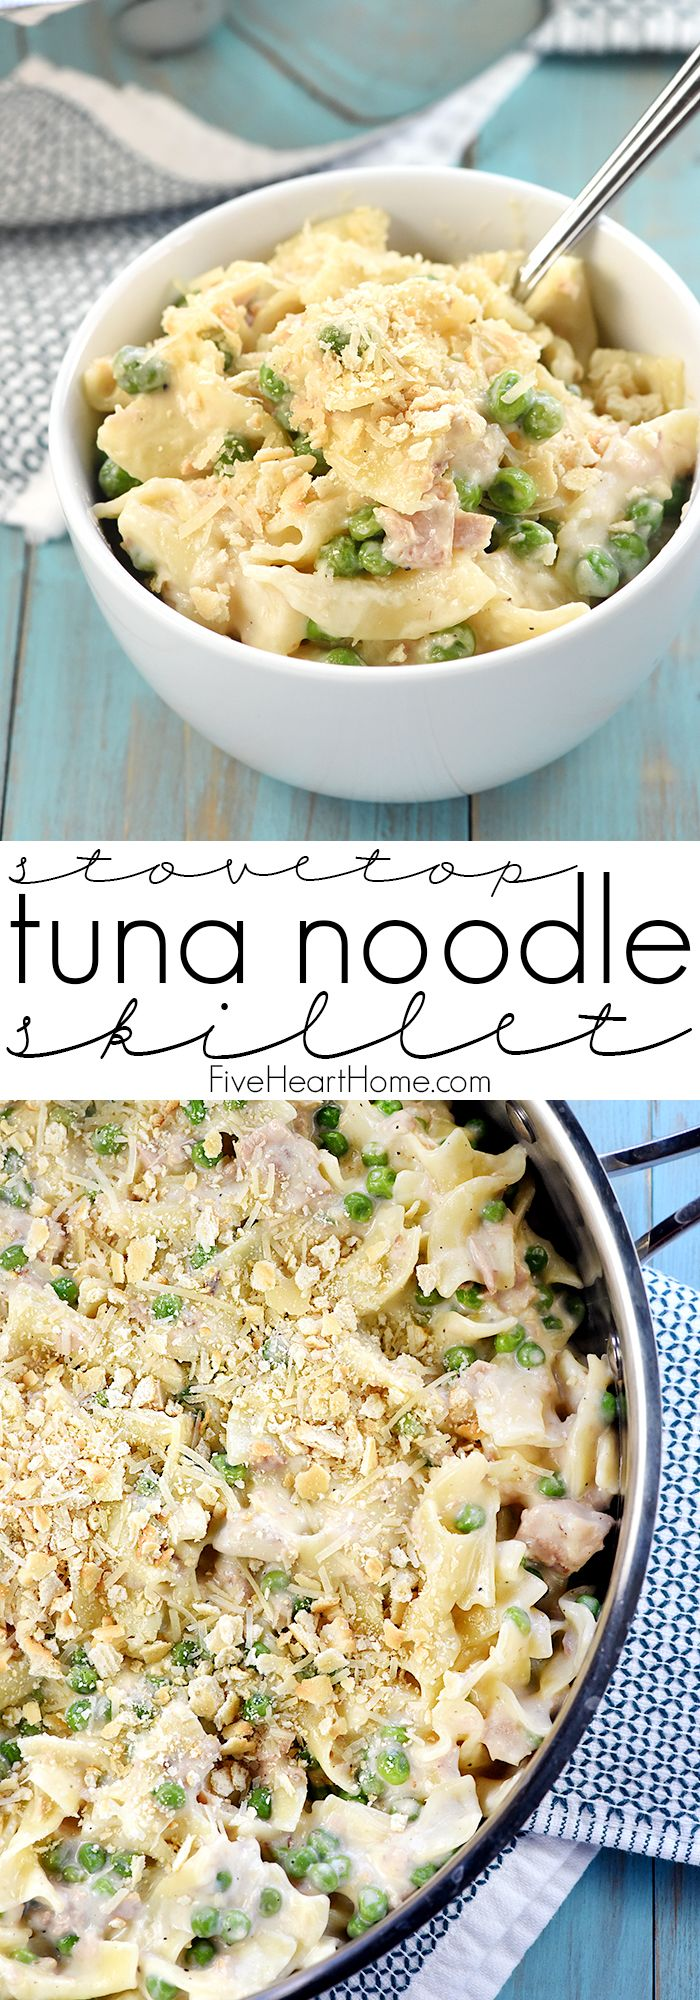 Stovetop Tuna Noodle Casserole Skillet ~ a quick and easy, comforting dinner recipe loaded with tuna, egg noodles, peas, and a creamy, cheesy, from-scratch white sauce!   FiveHeartHome.com